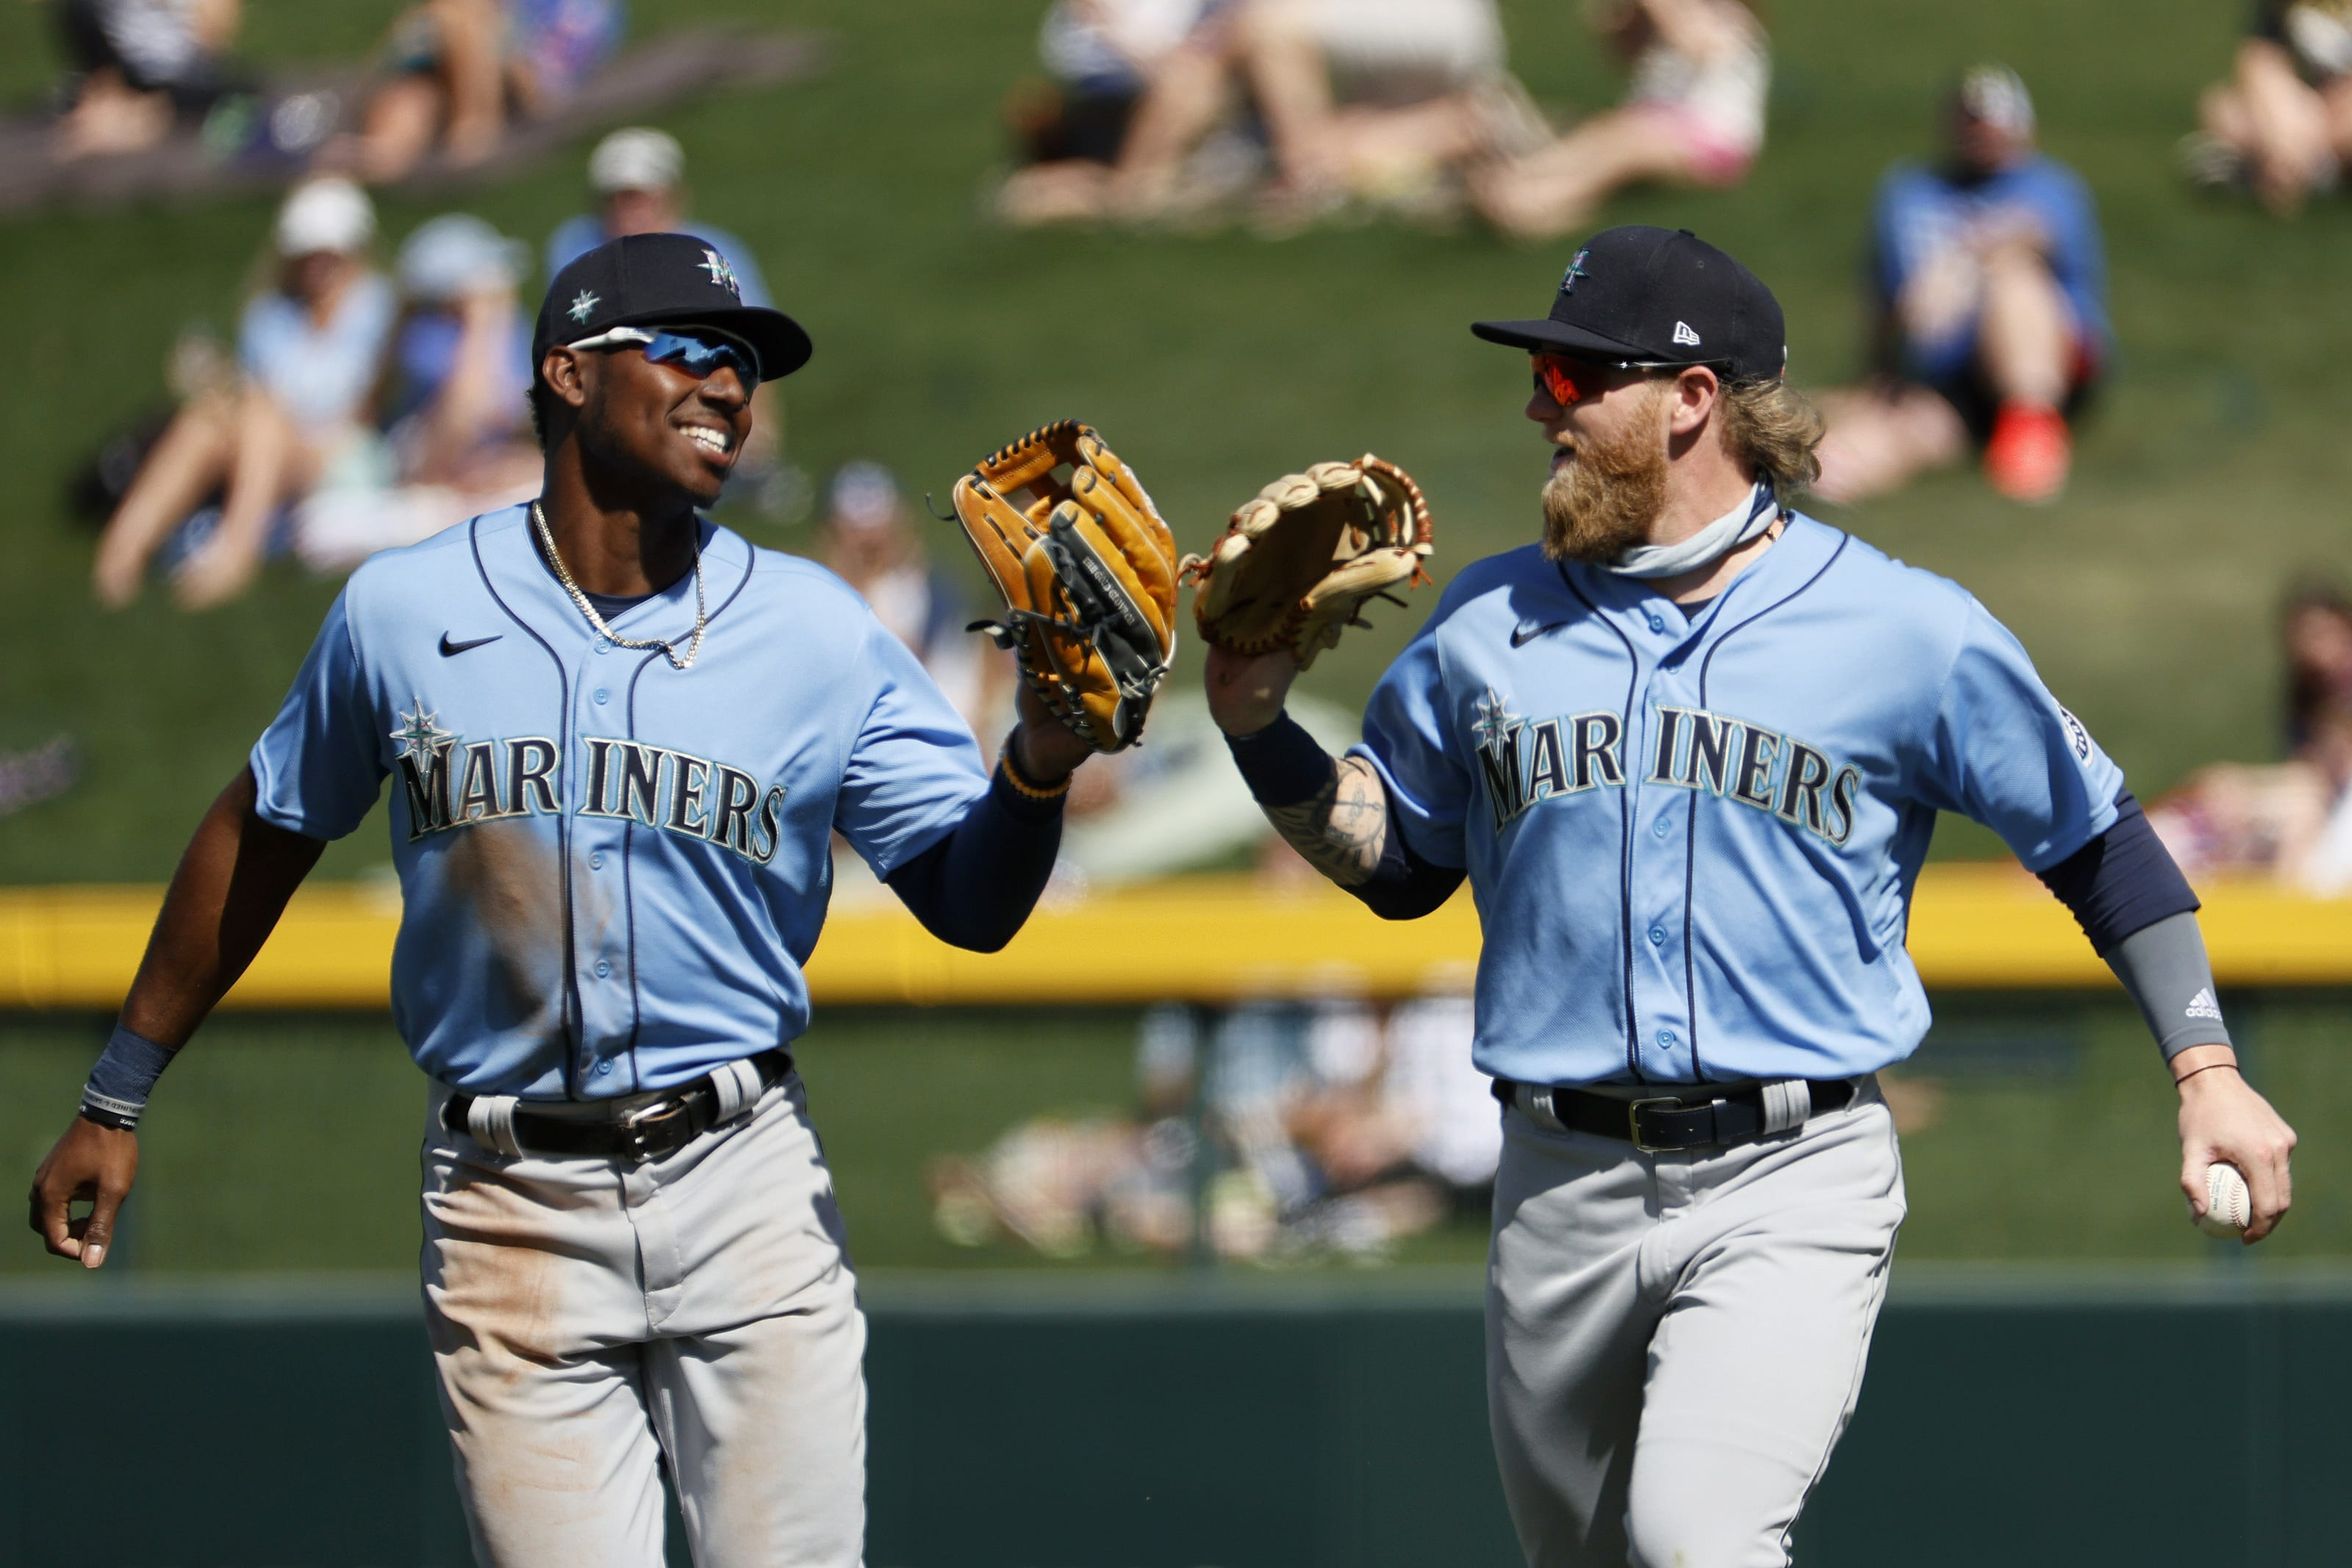 Kyle Lewis and Jake Fraley of the Mariners in Spring Training.